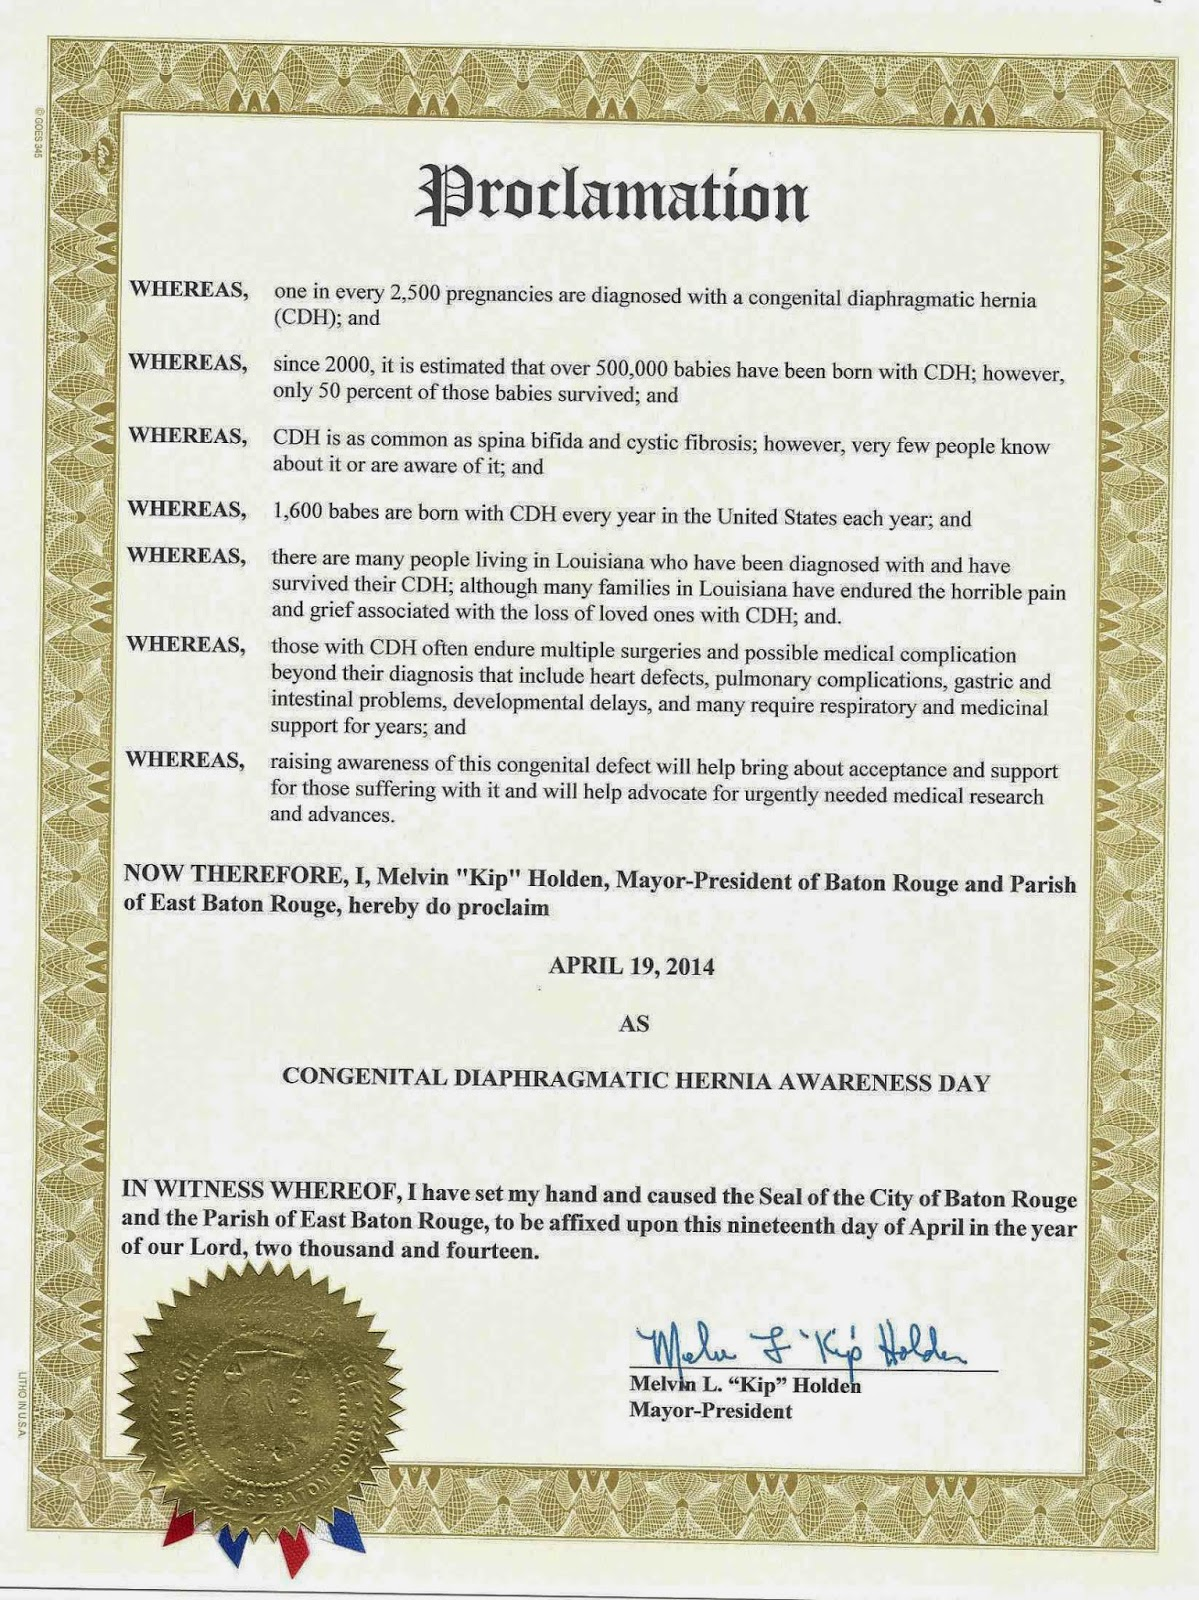 Louisiana proclaims cdh awareness day the towns of new orleans baton rouge hammond gretna thibodaux and alexandria louisiana have proclaimed april 19th a day of congenital diaphragmatic aiddatafo Choice Image